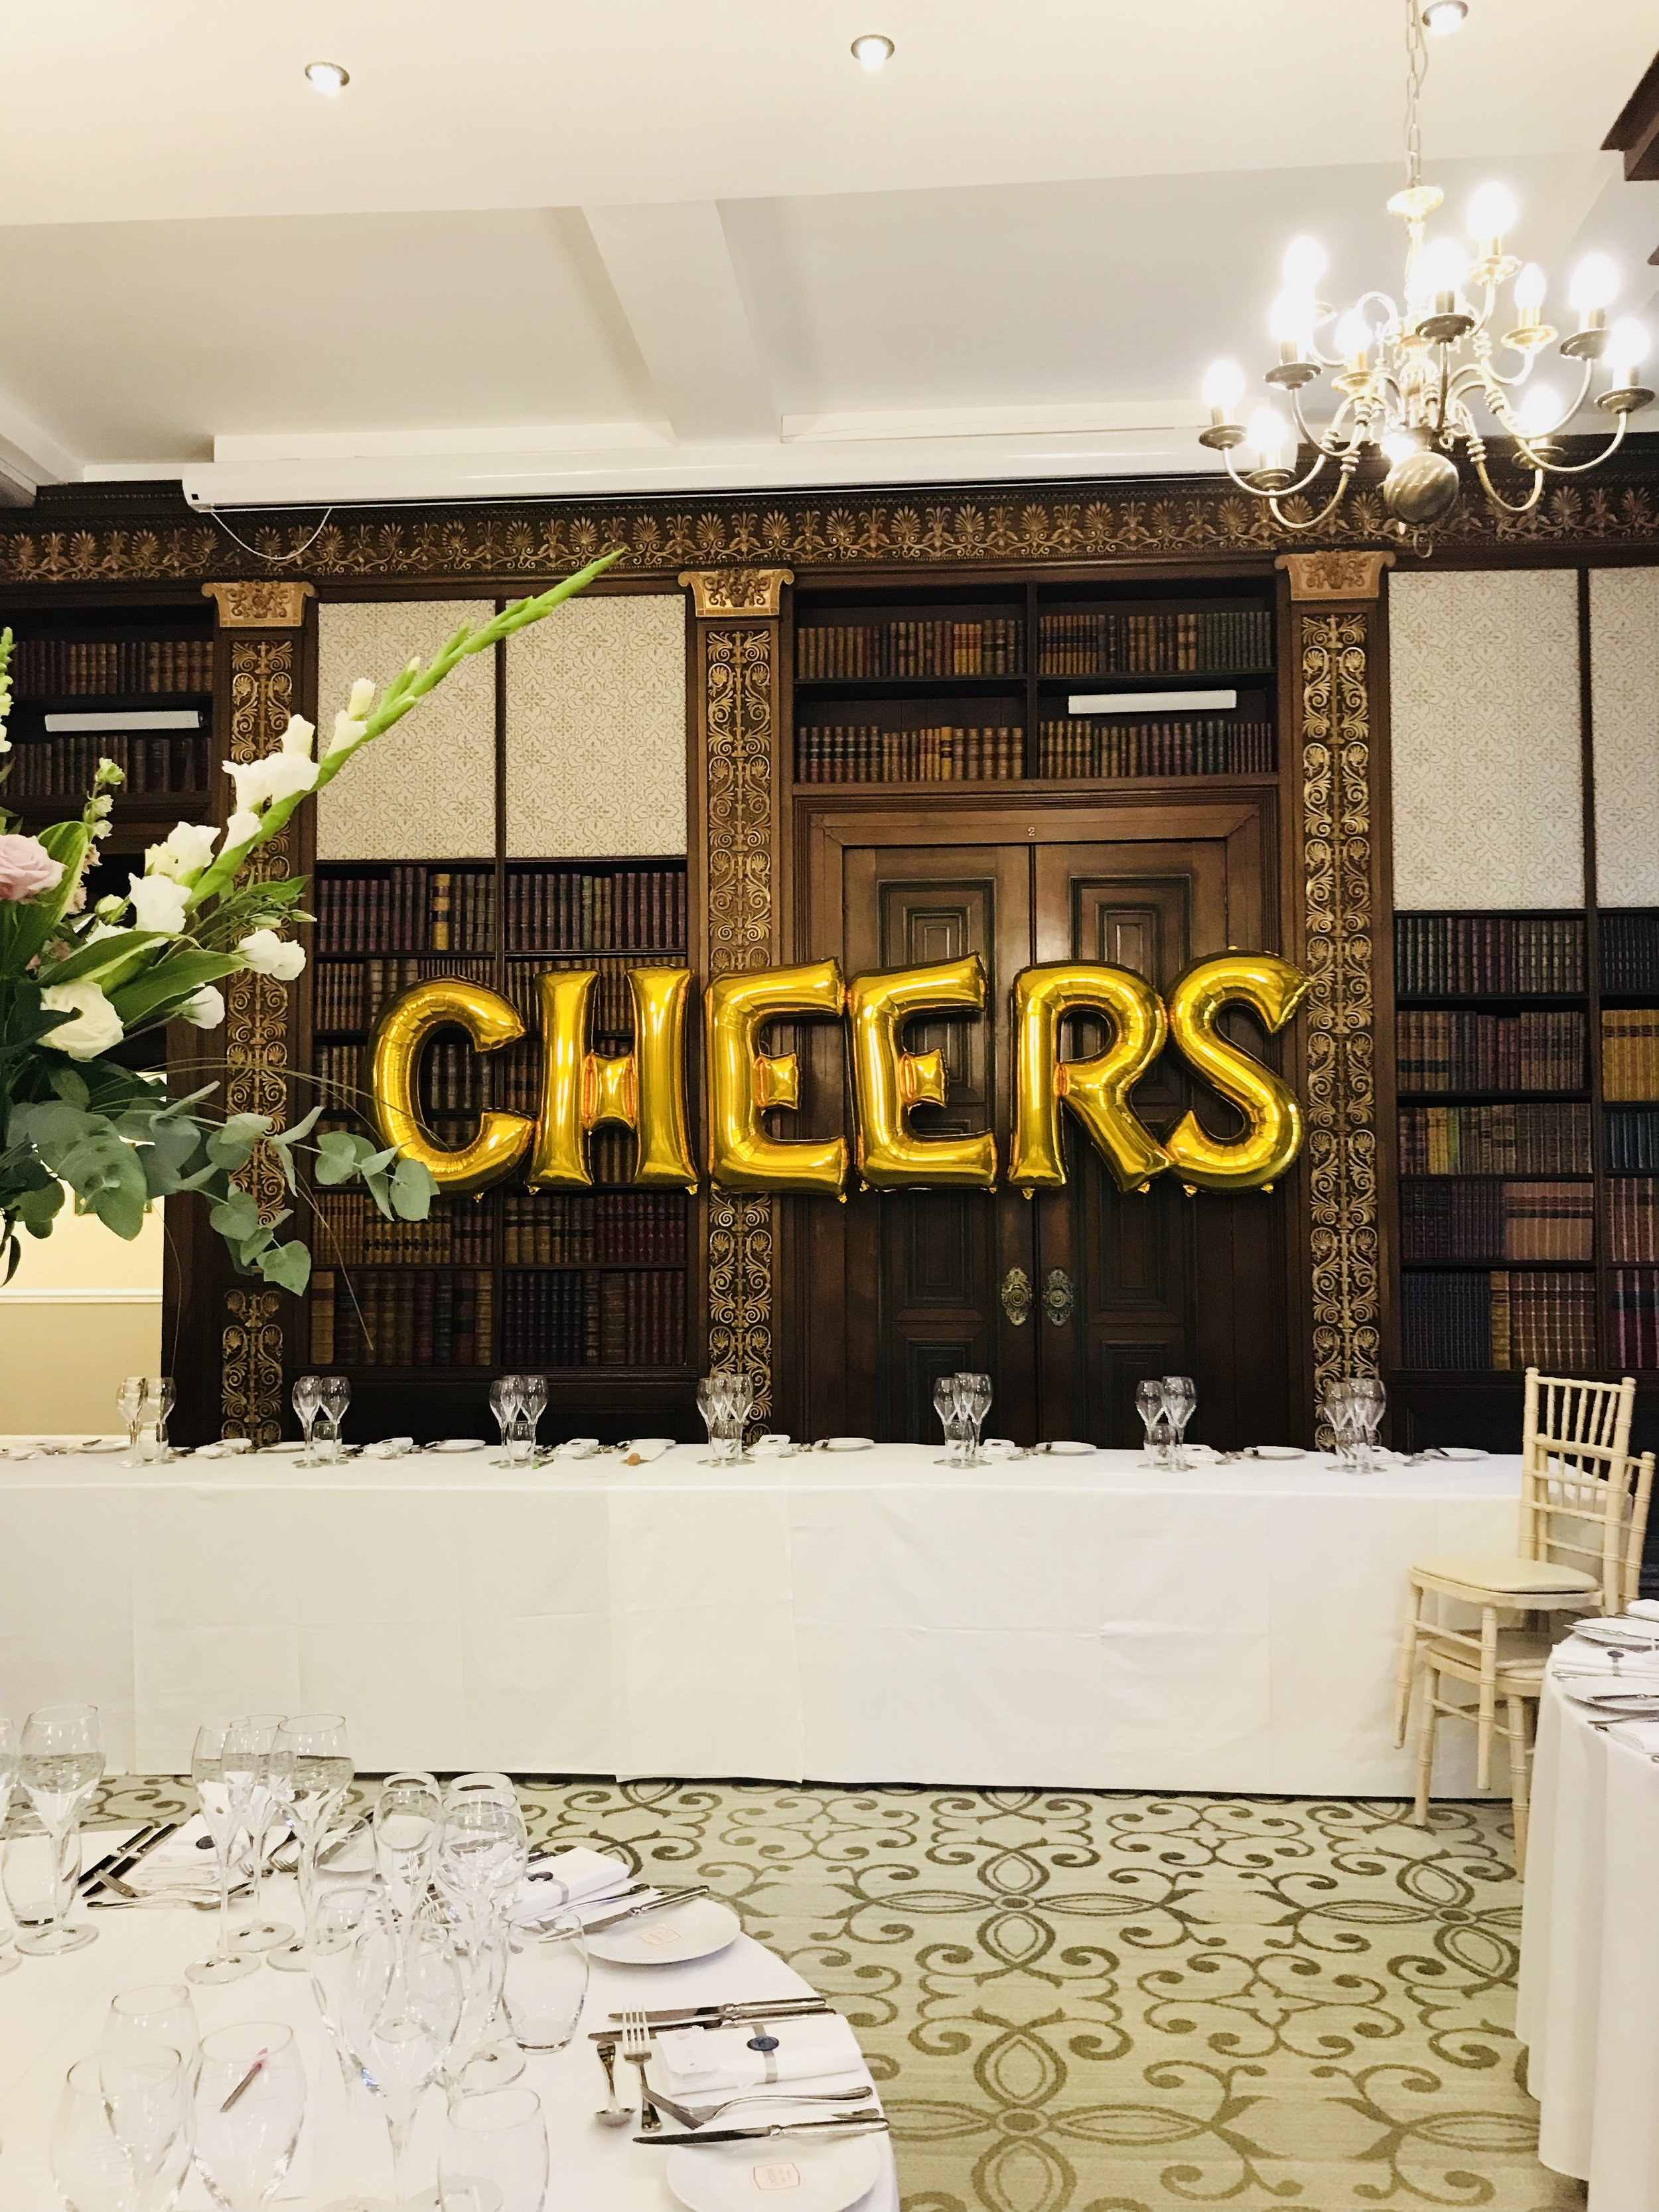 Cheers Letter Balloon Display